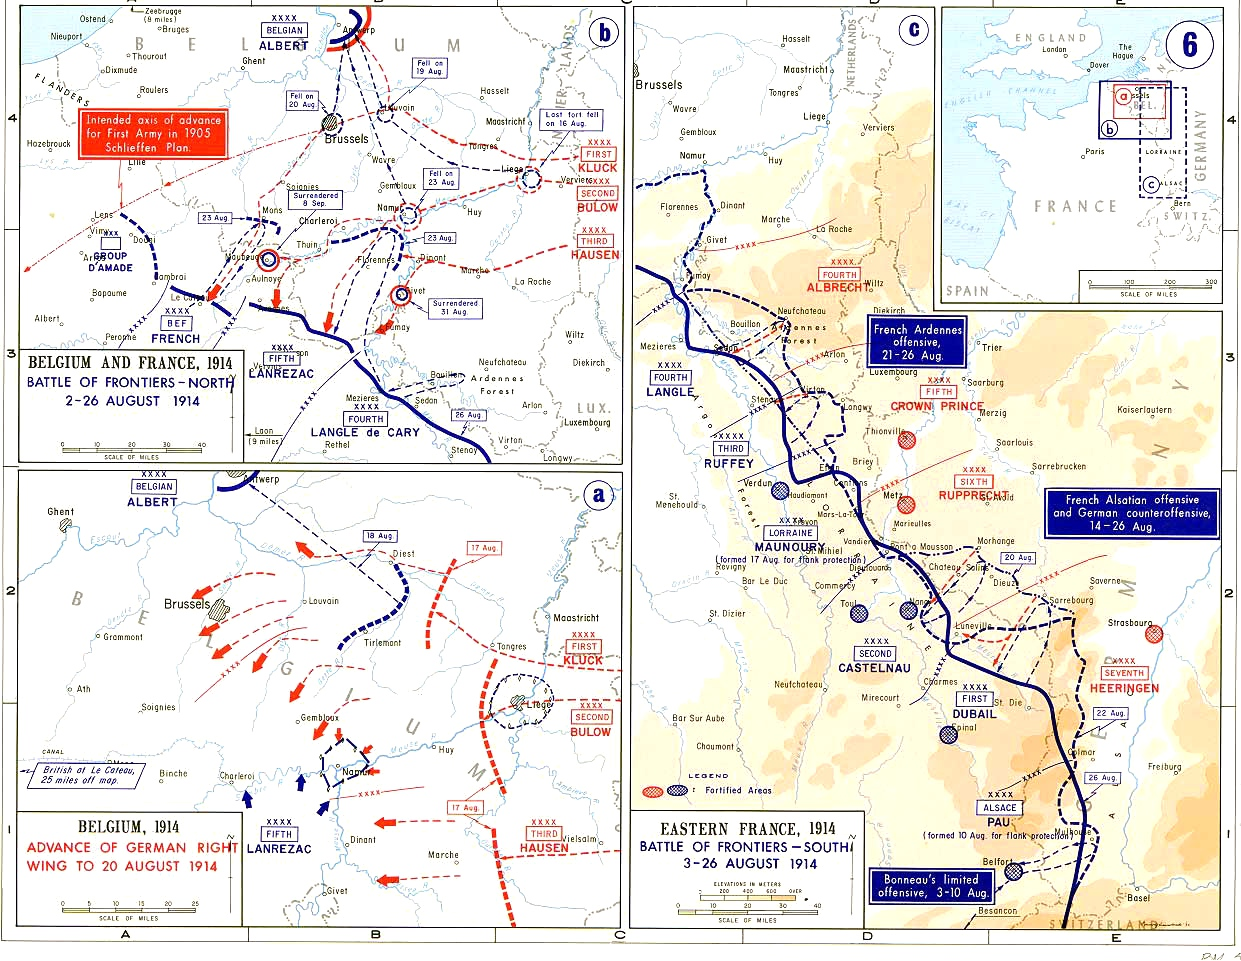 http://upload.wikimedia.org/wikipedia/commons/6/6c/Battle_of_Frontiers_-_Map.jpg